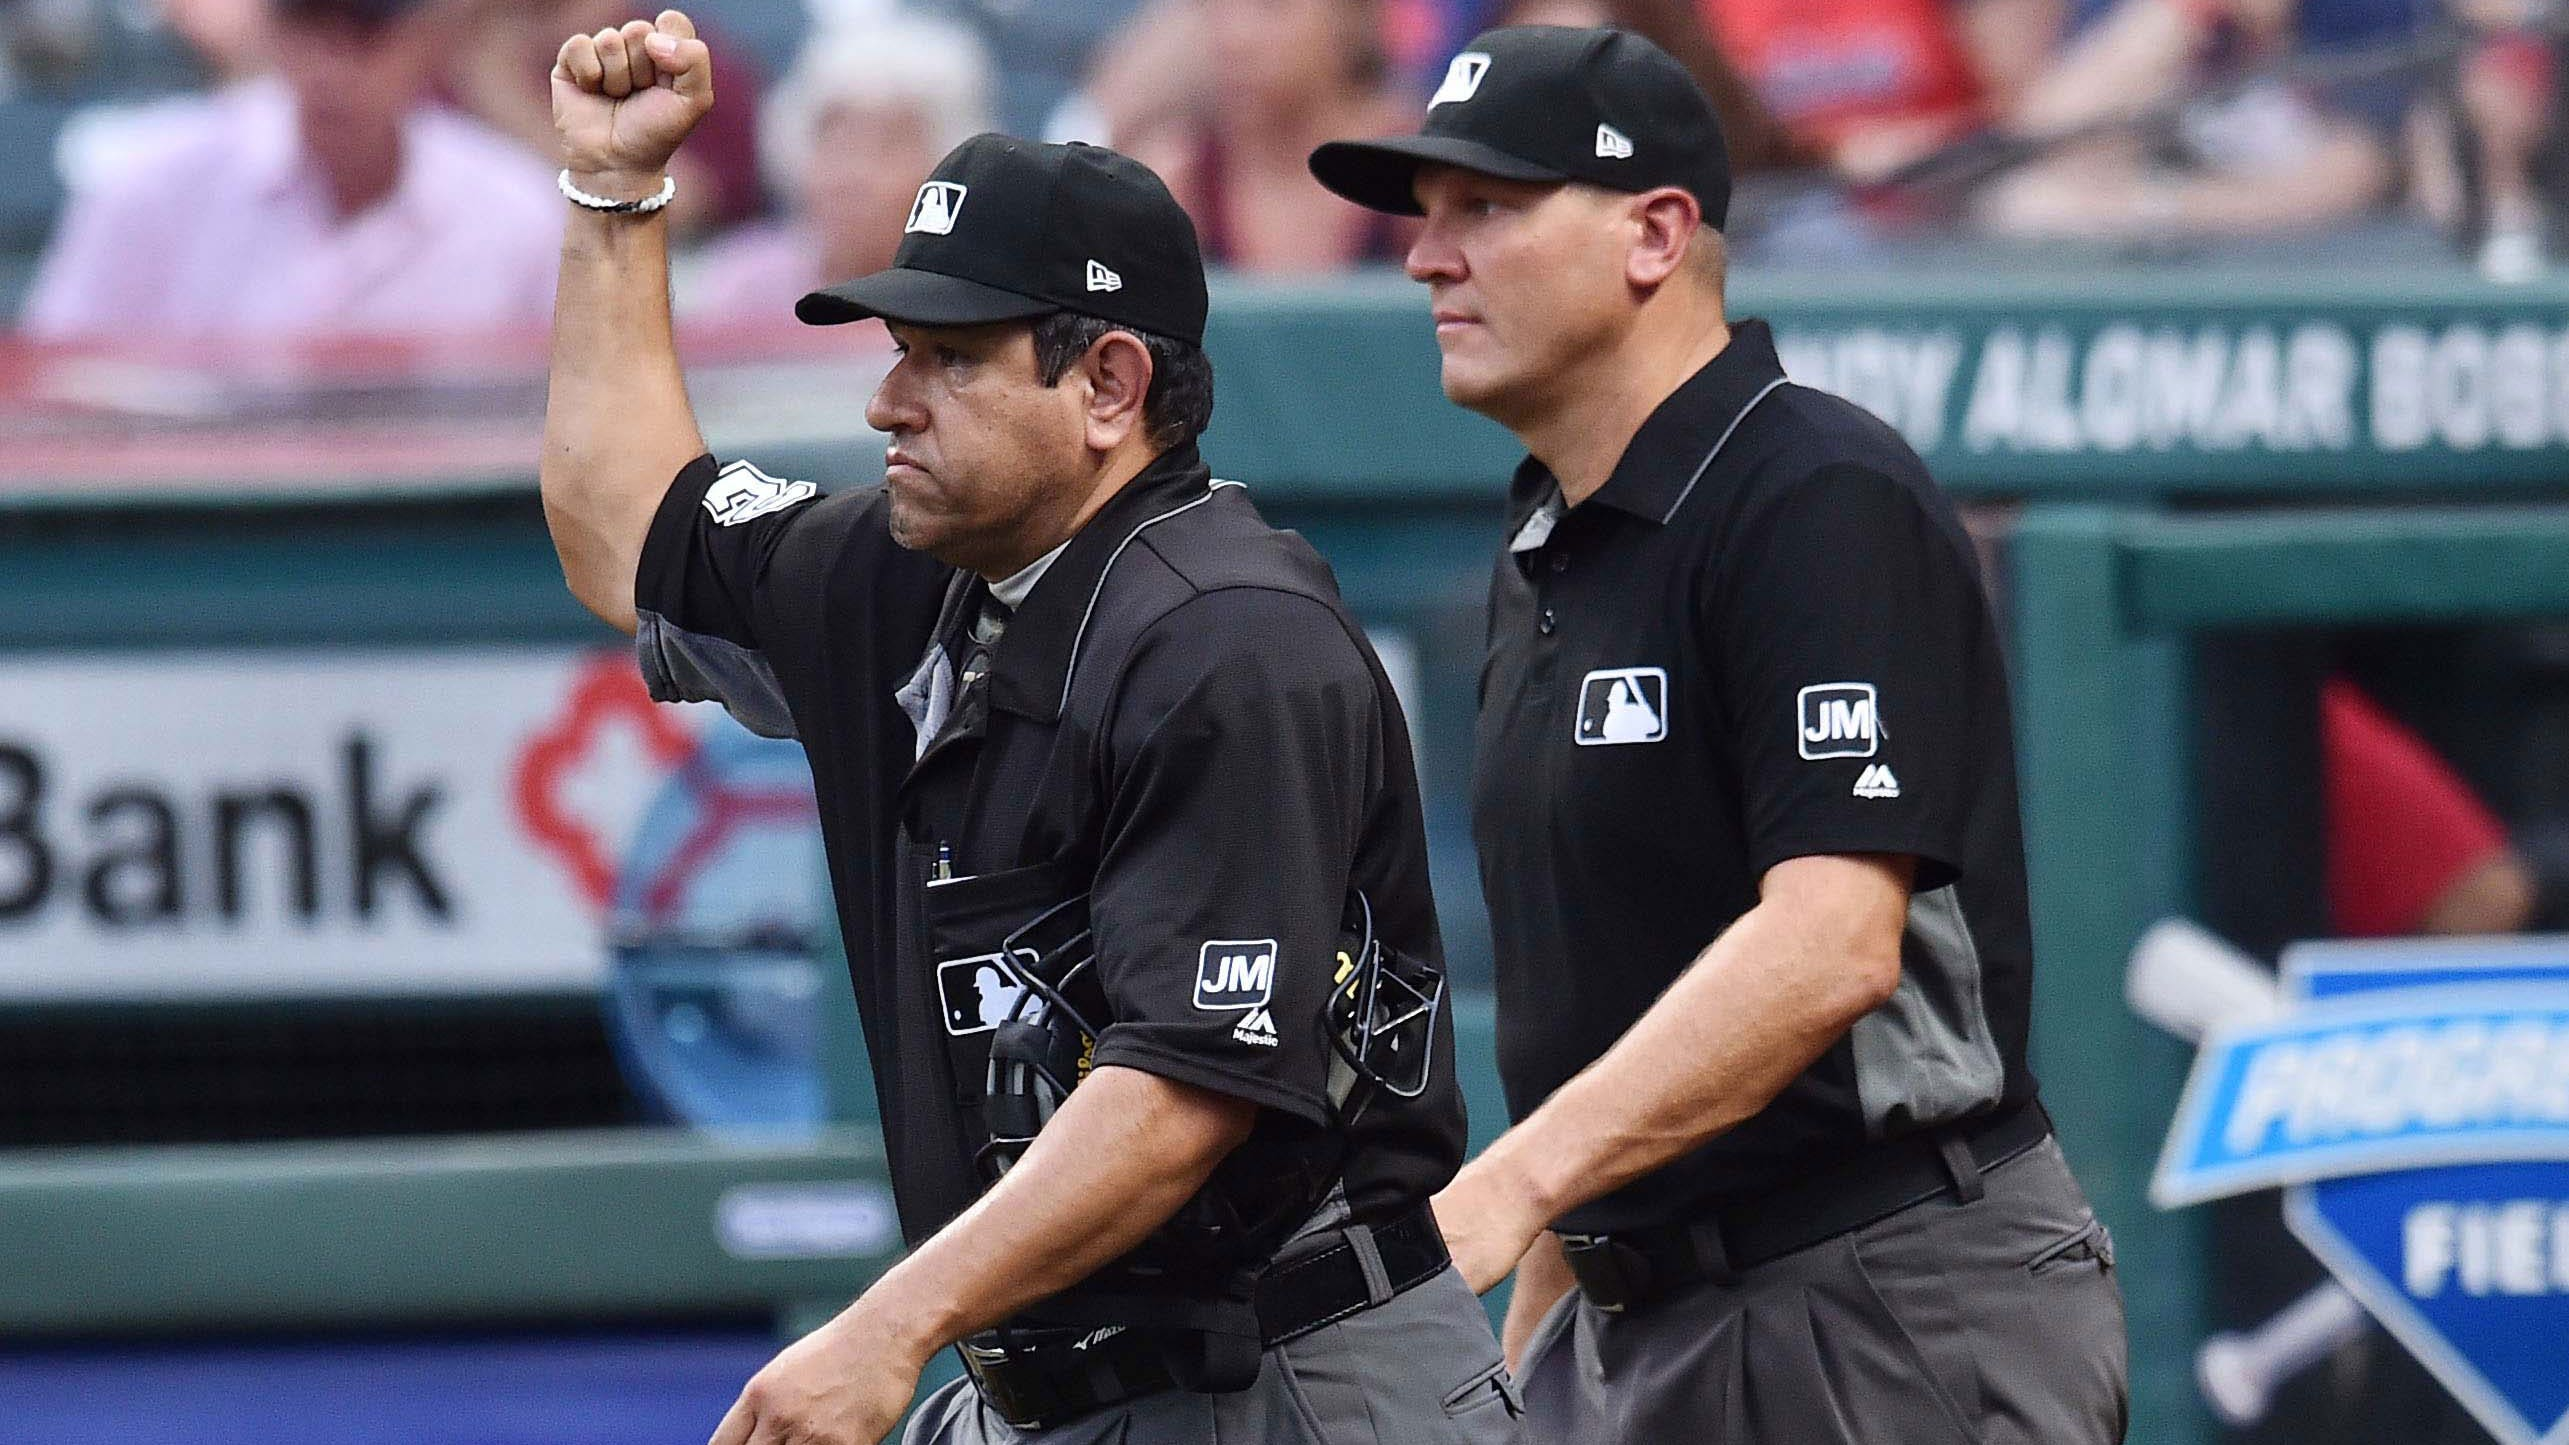 Mlb umpire betting stats nhl parlay betting websites review